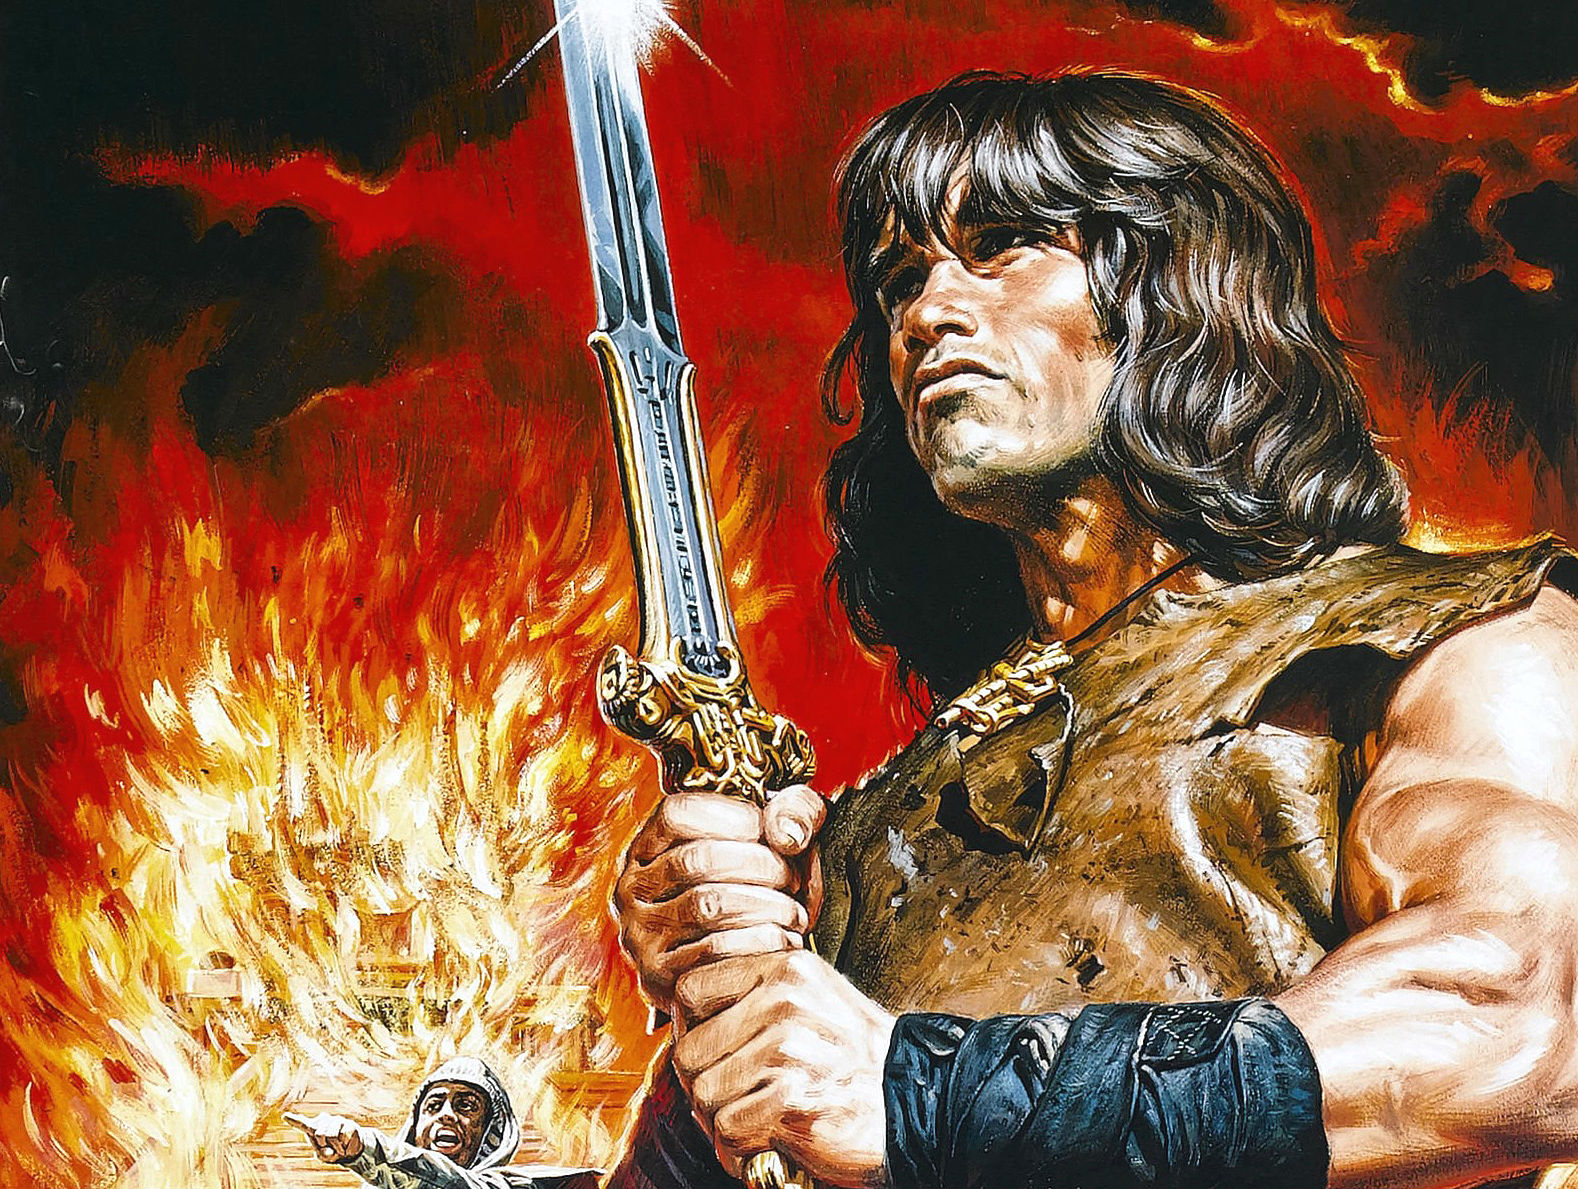 Conan The Barbarian Computer Wallpapers Desktop Backgrounds 1578x1189